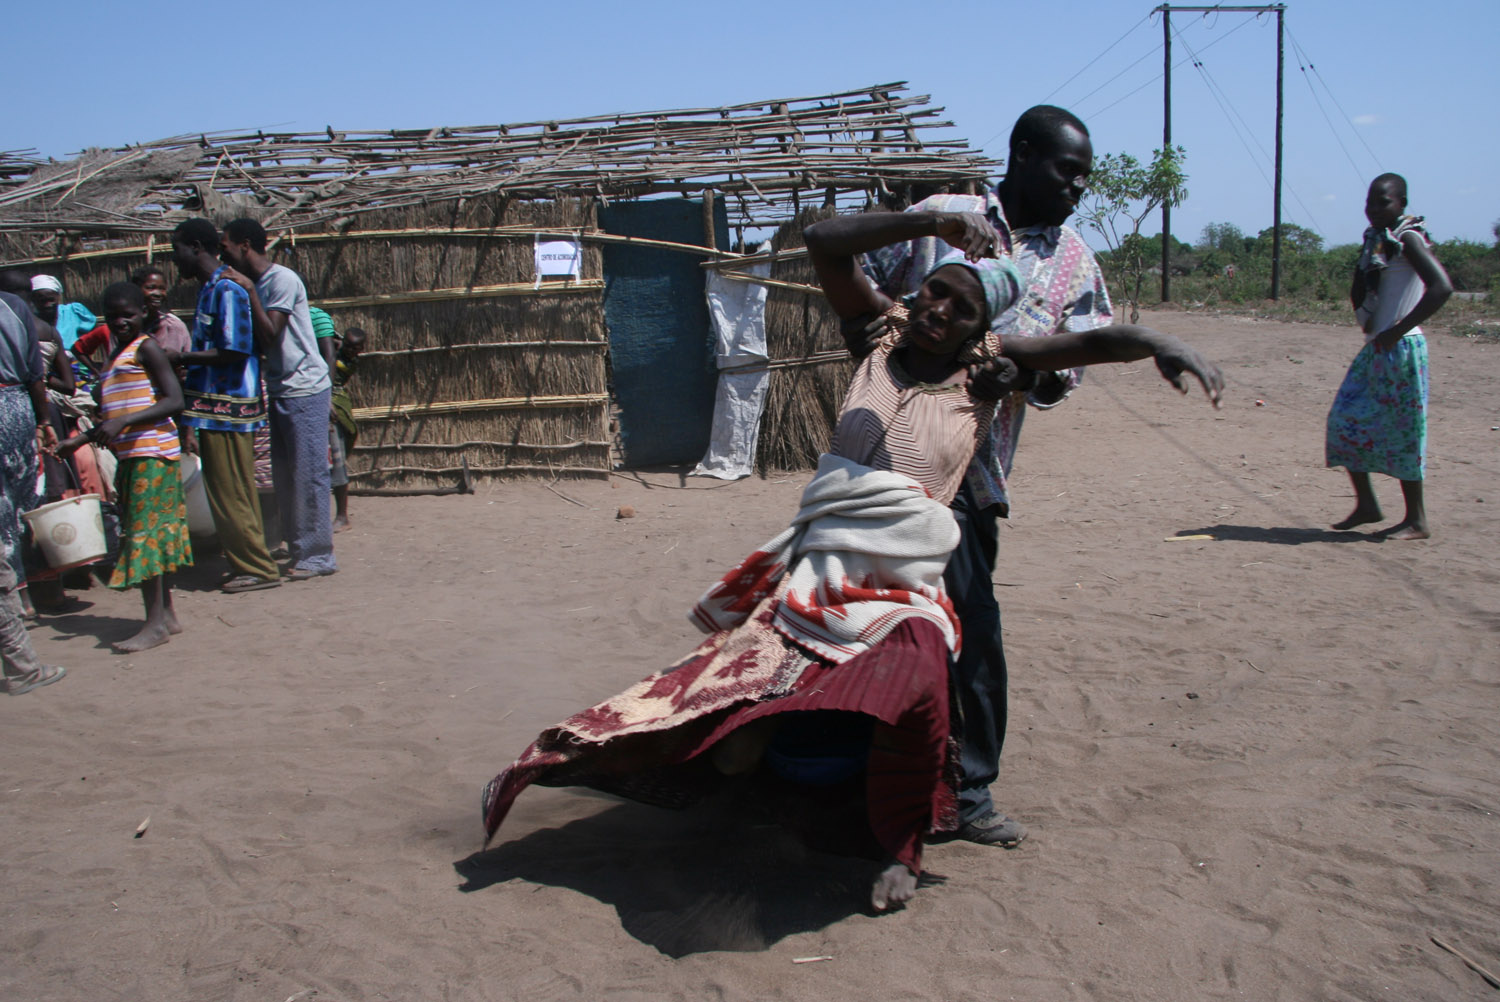 """Injured"" woman carried to safety as part of a flood simulation exercise designed to prepare people for emergencies. Floods have cost hundreds of lives and millions of dollars in damages in recent years in parts of Caia, Mozambique, 2008."